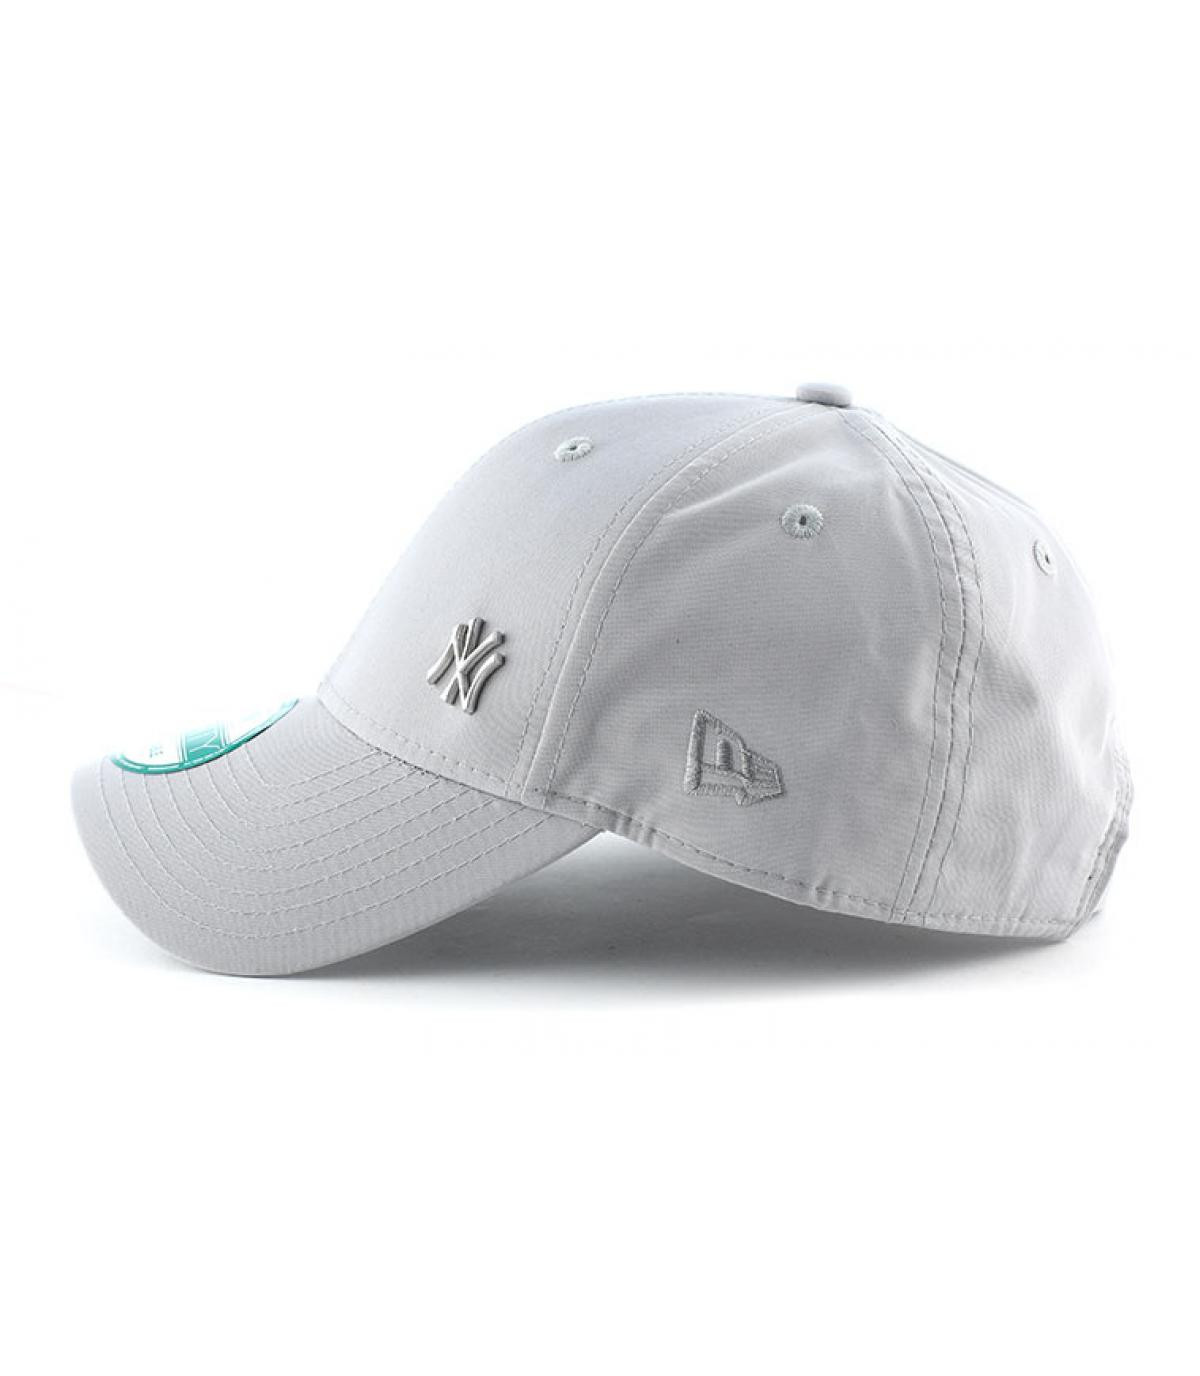 Détails Casquette NY flawless gray - image 4